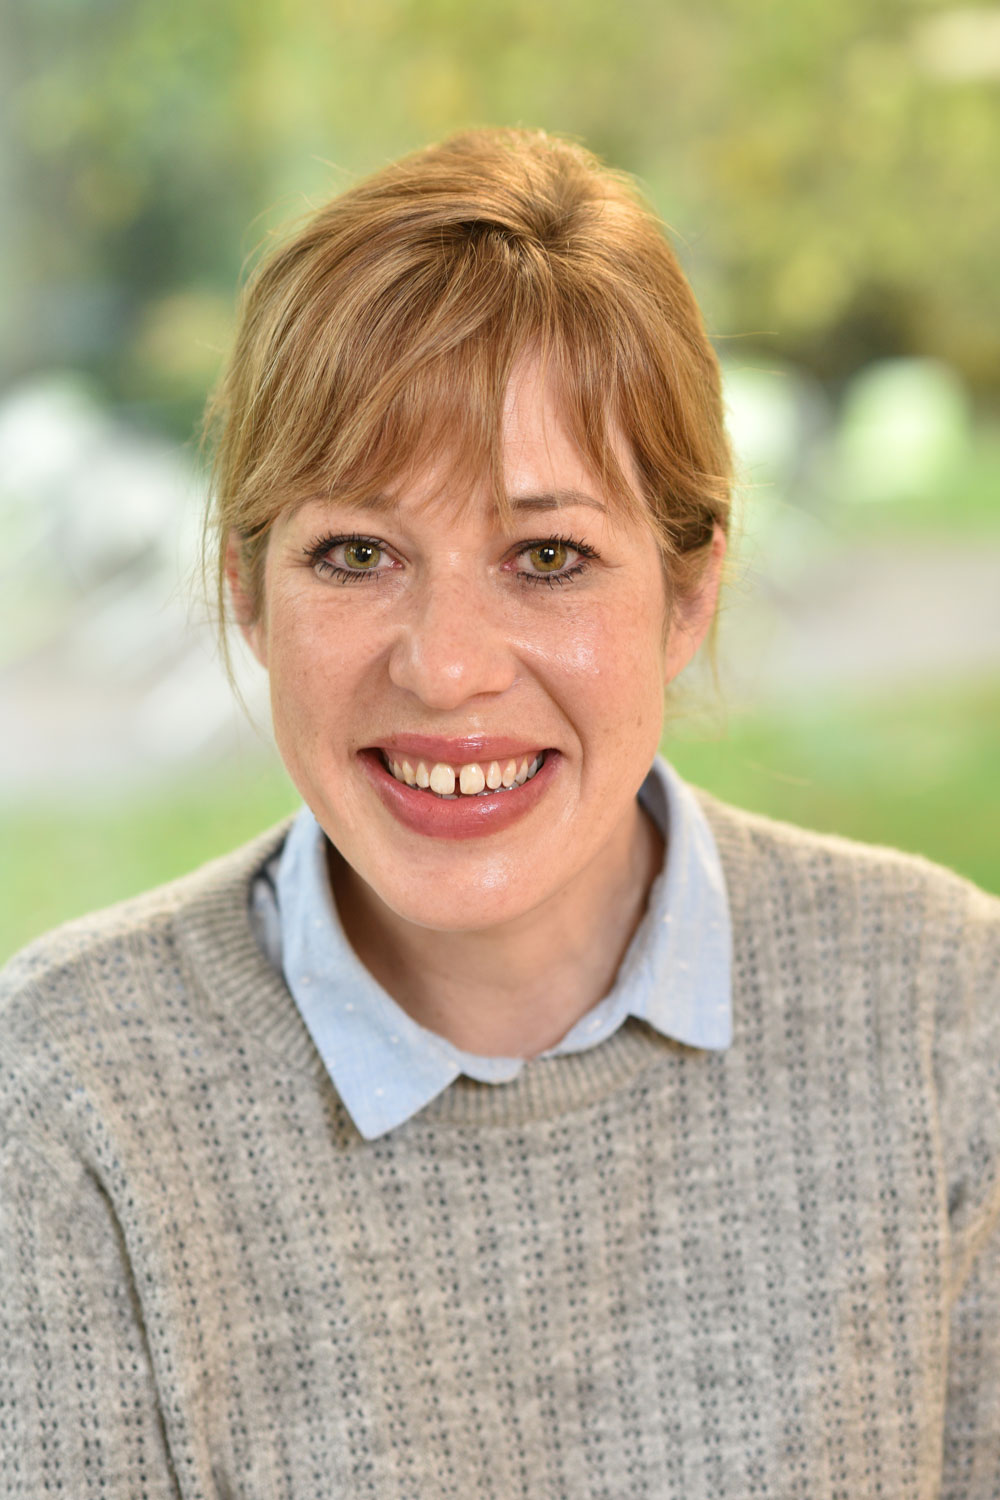 Isobel Clarke, Head of Latin America and Middle East